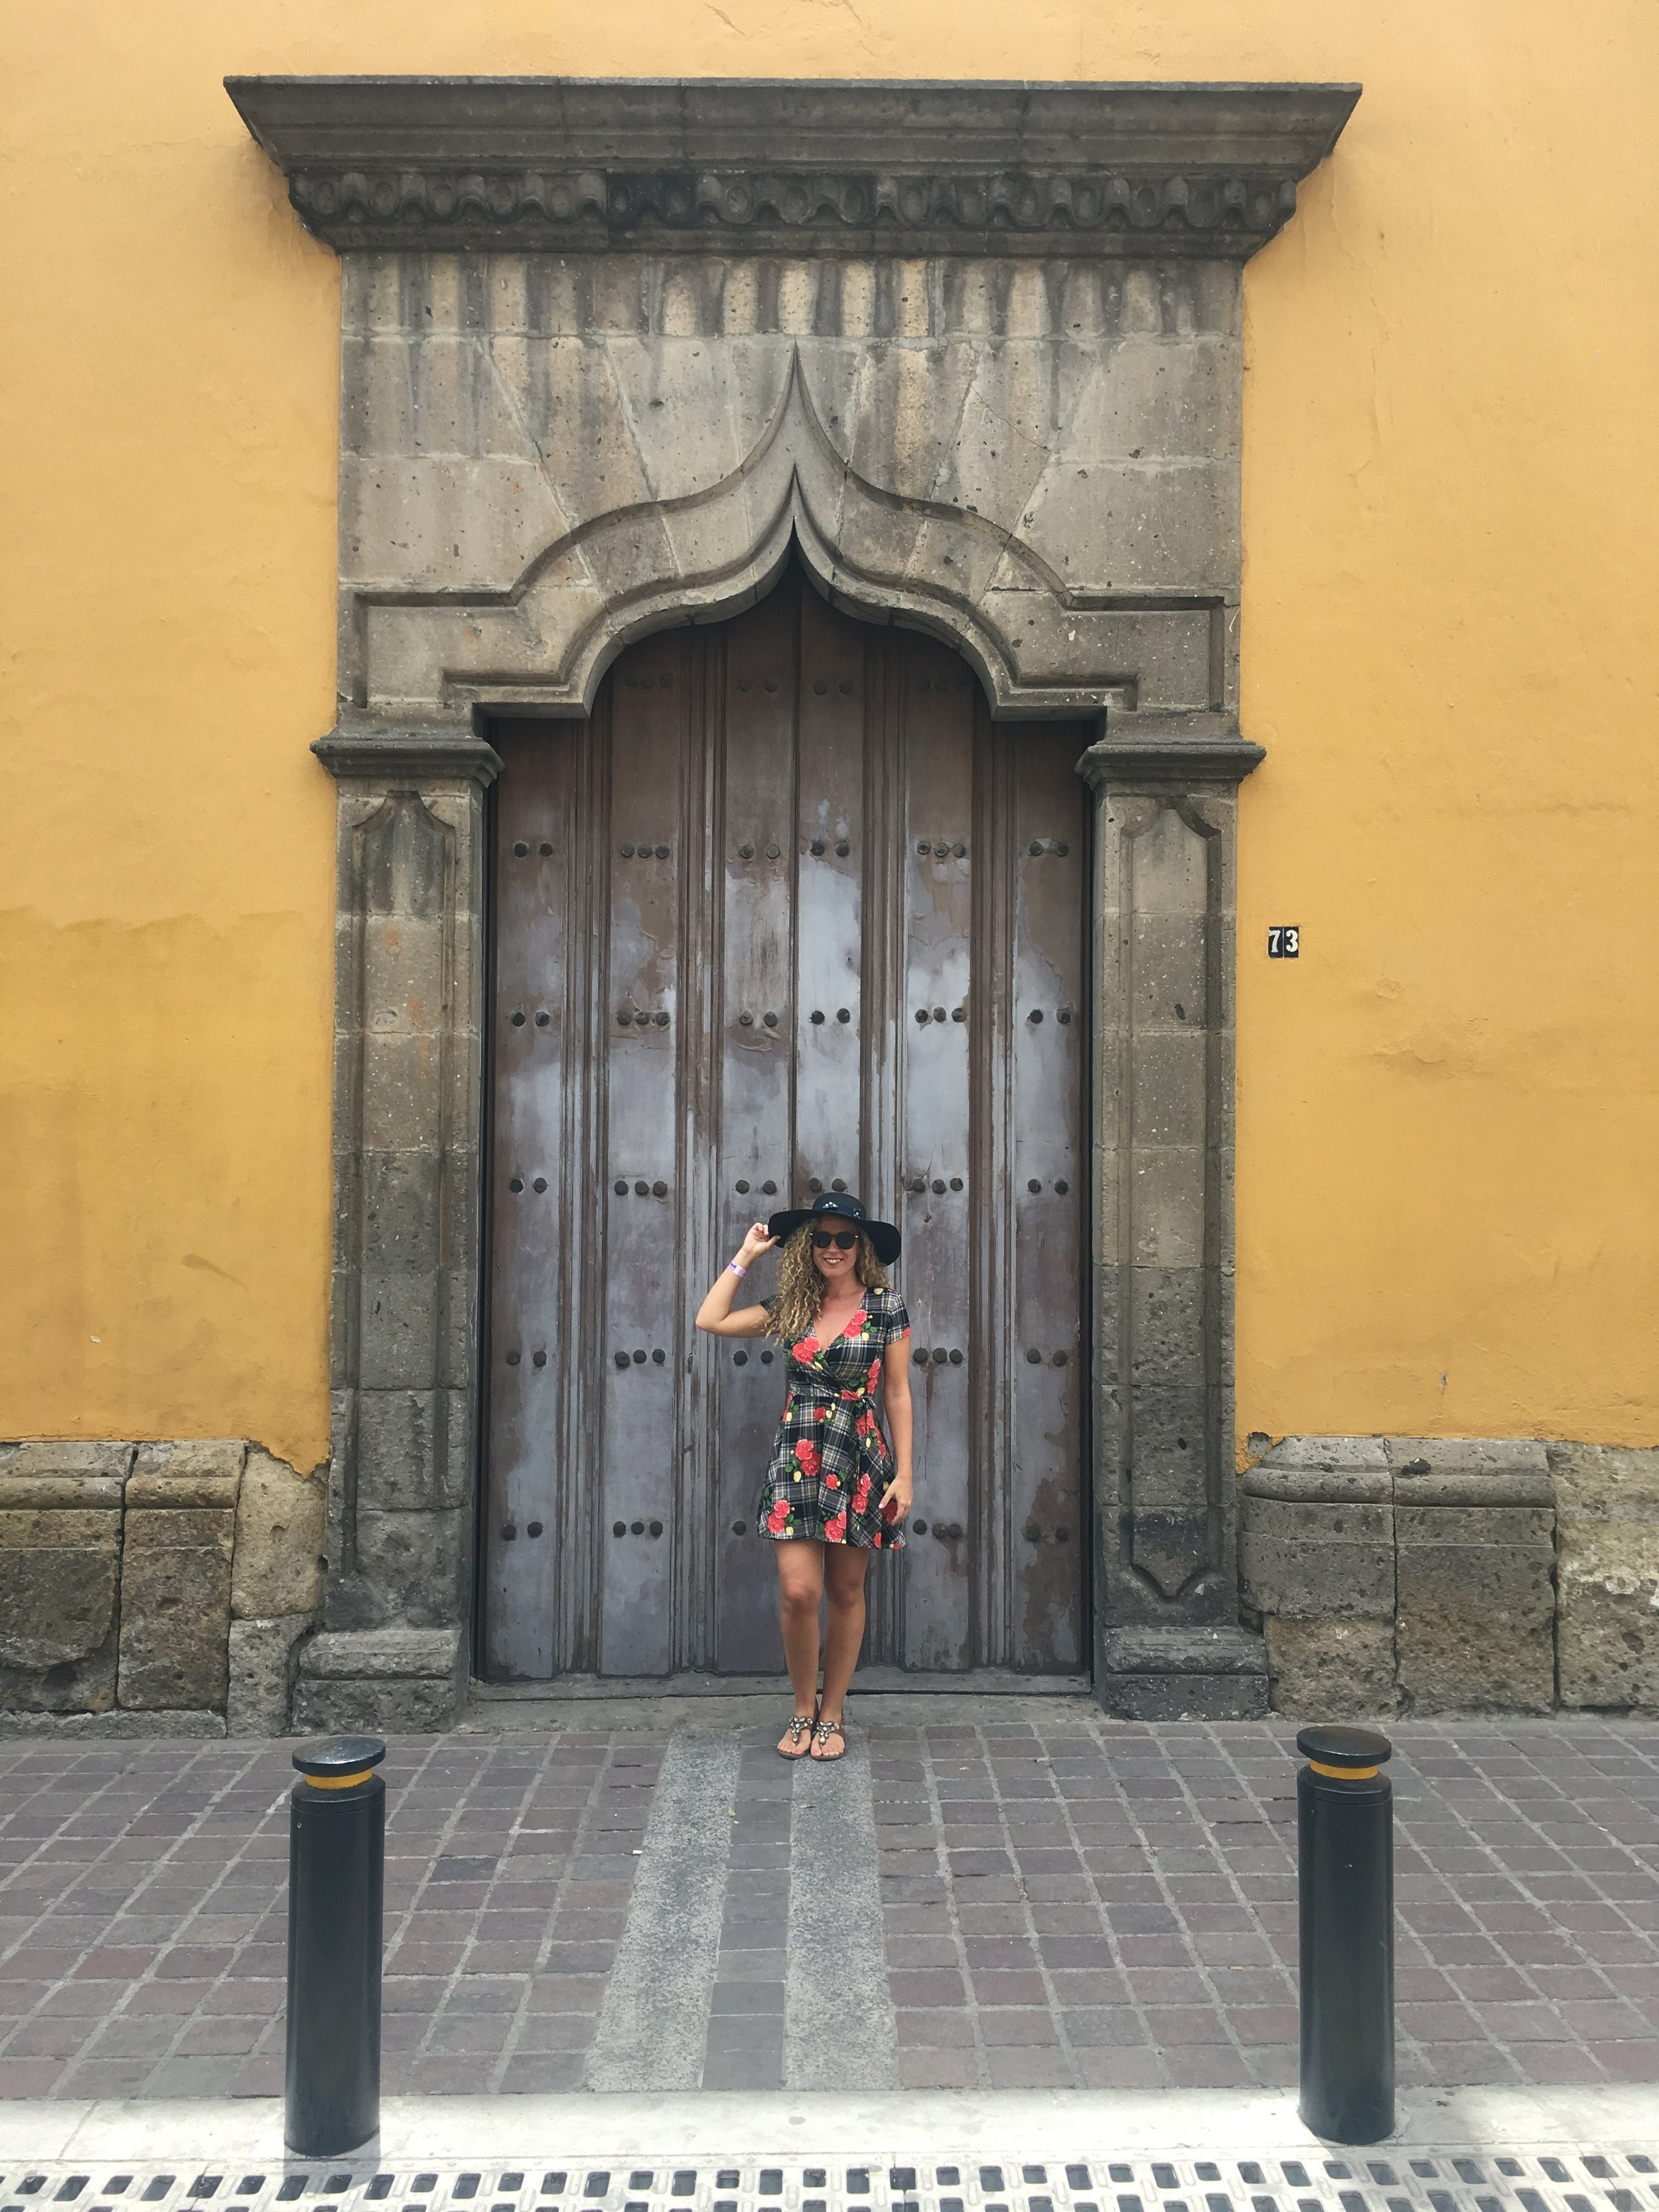 Say cheese! The street art & photo opps in GDL are endless!